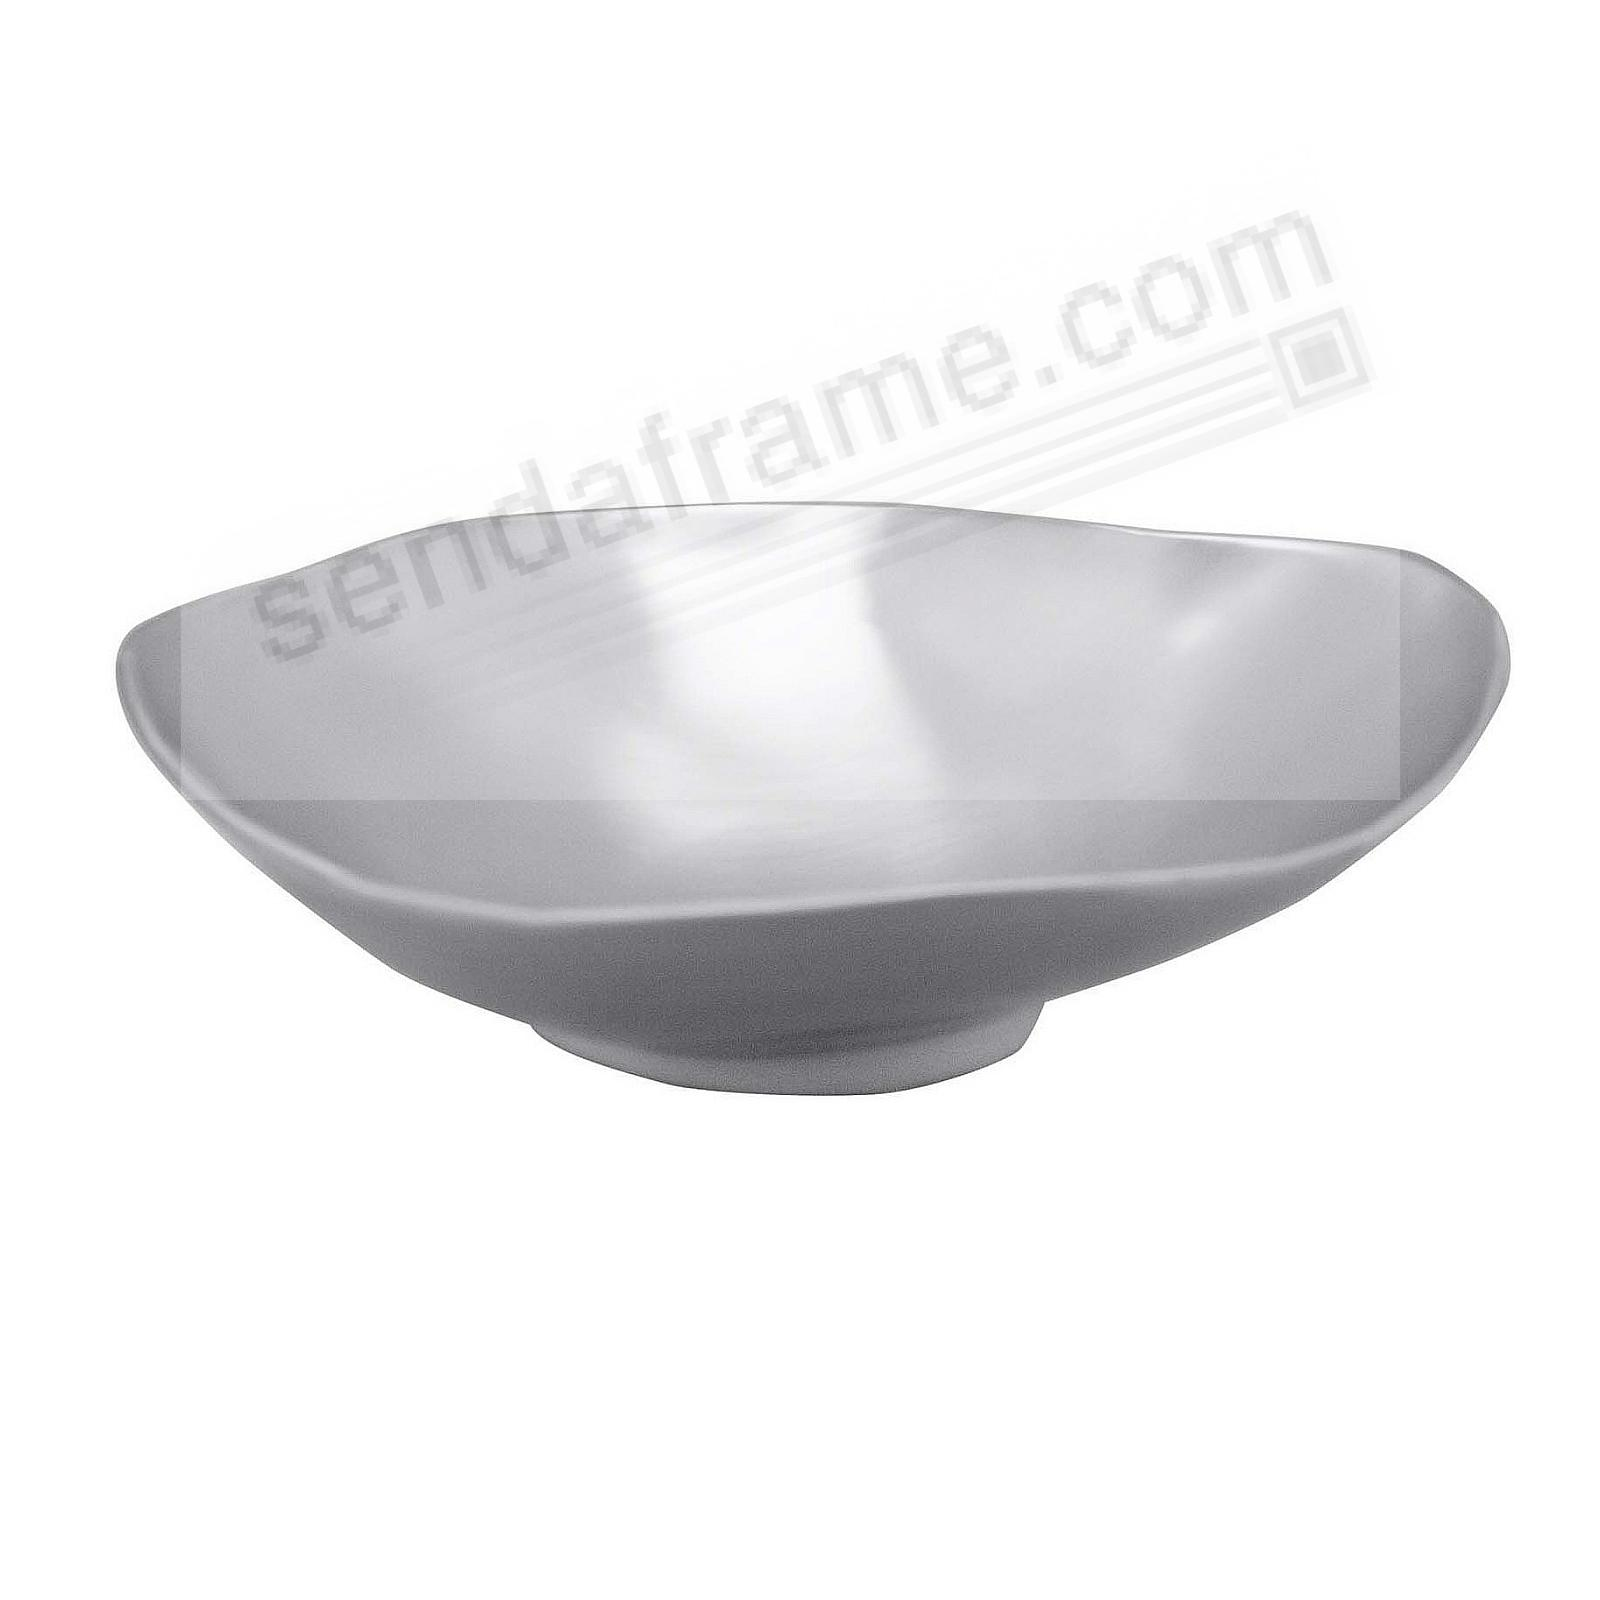 The INFINITY 13-in SERVING BOWL by Mariposa®